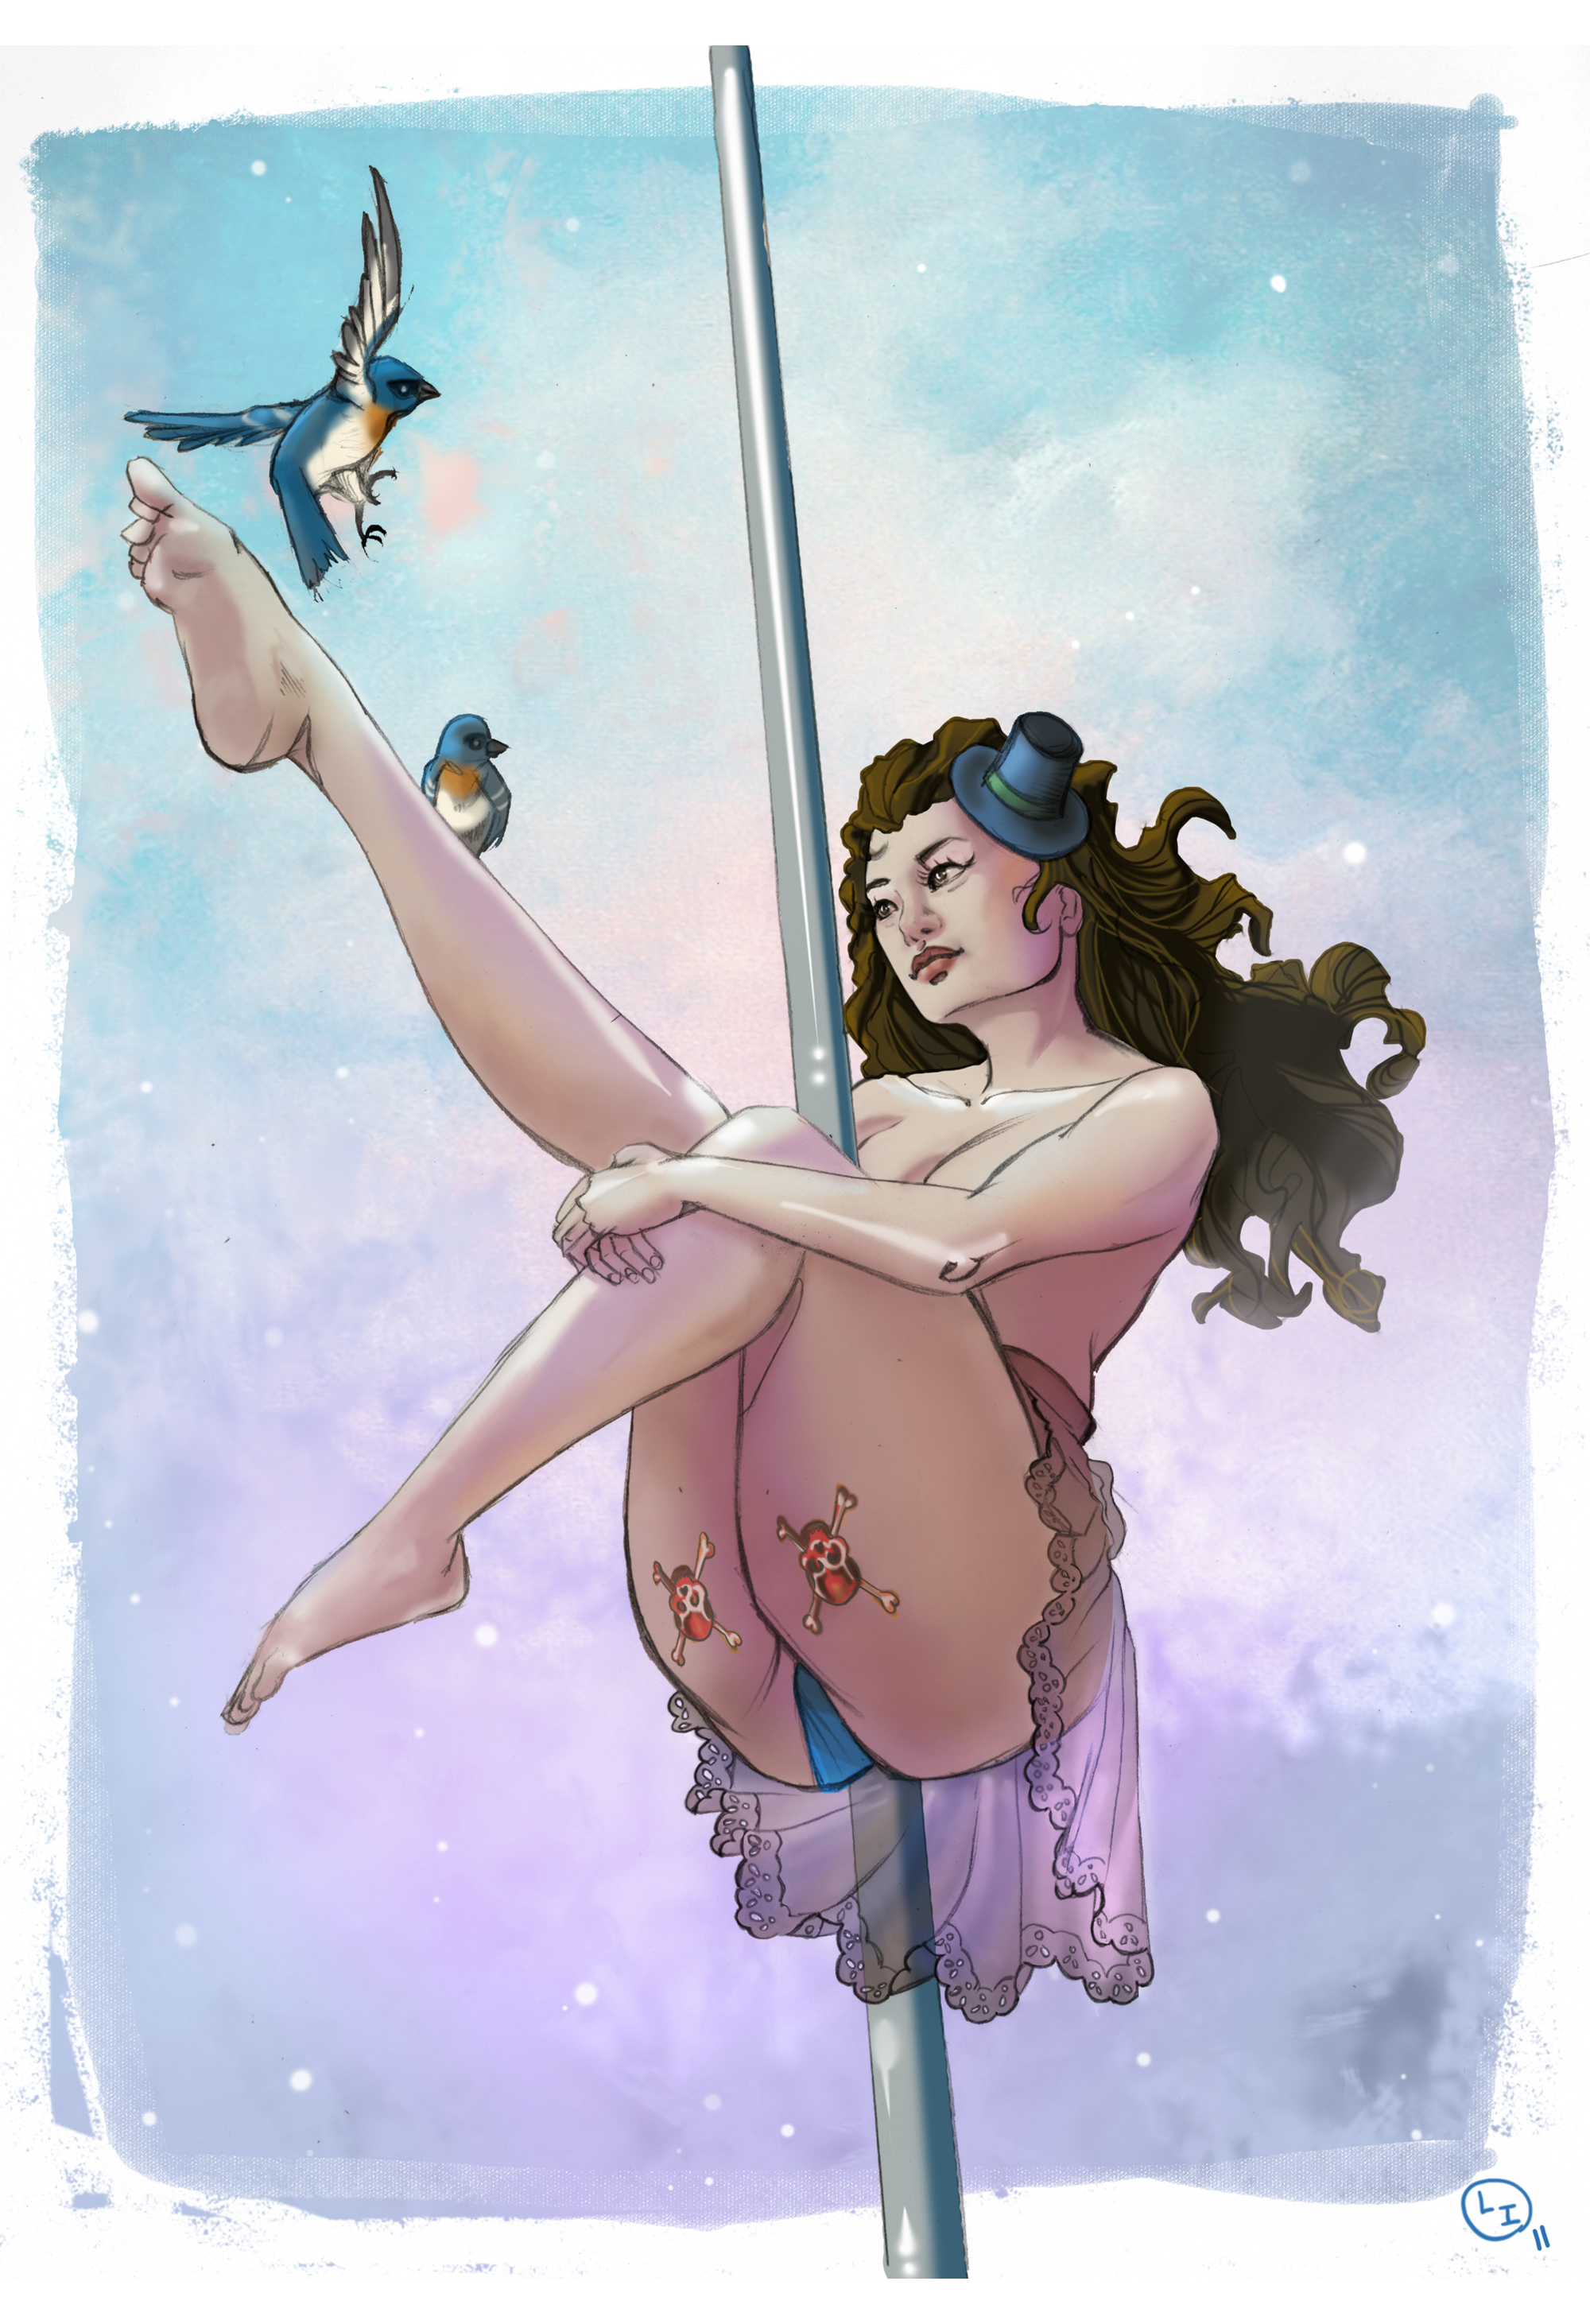 Pole Dance Illustration Drawing Nadia Sharif